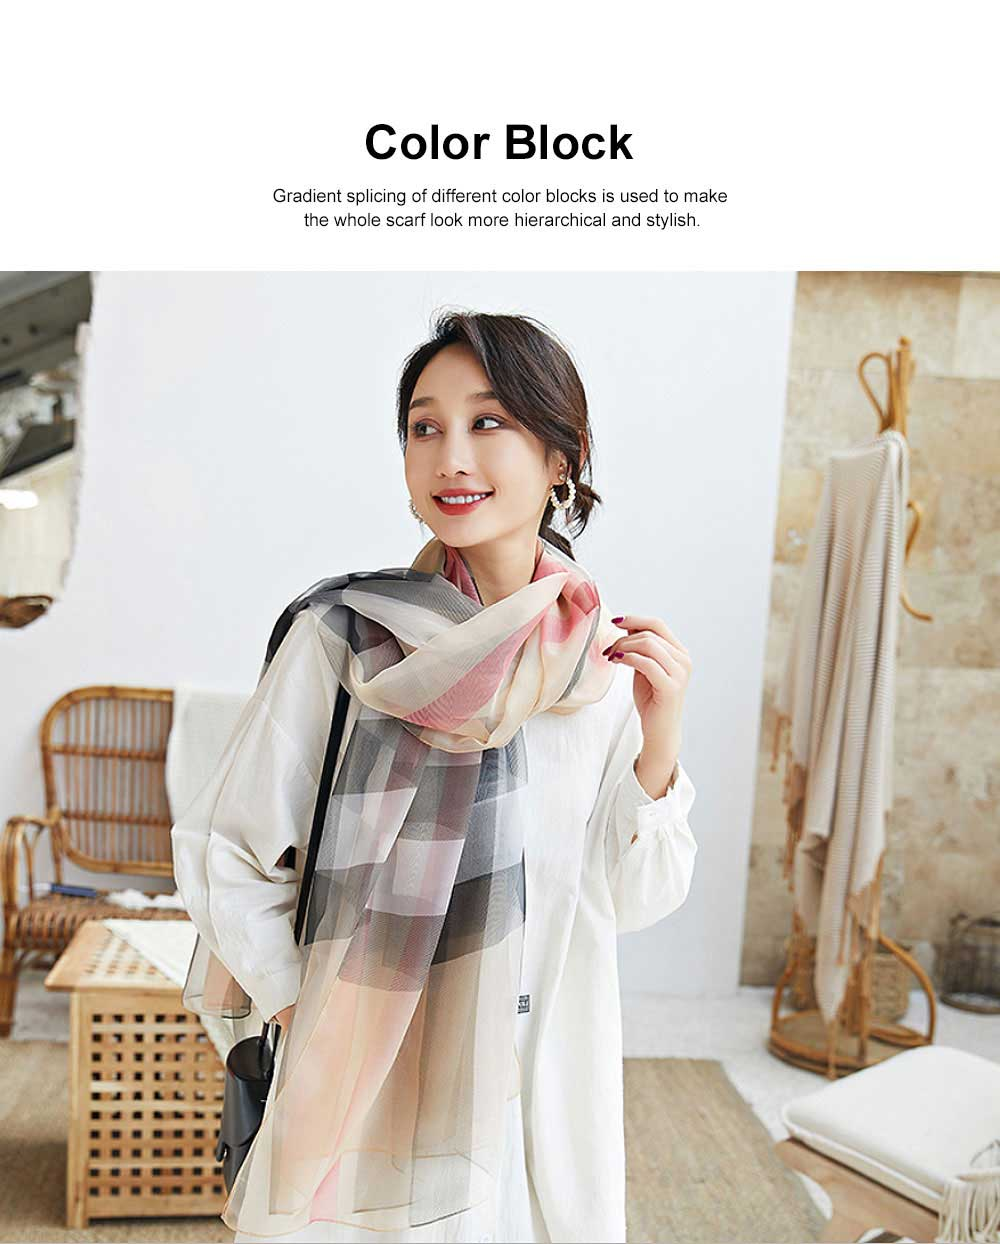 2019 Hot Gradient Grid Pants Scarf, New Sunscreen Scarf Shawl in Spring and Summer for Girl Lady 4